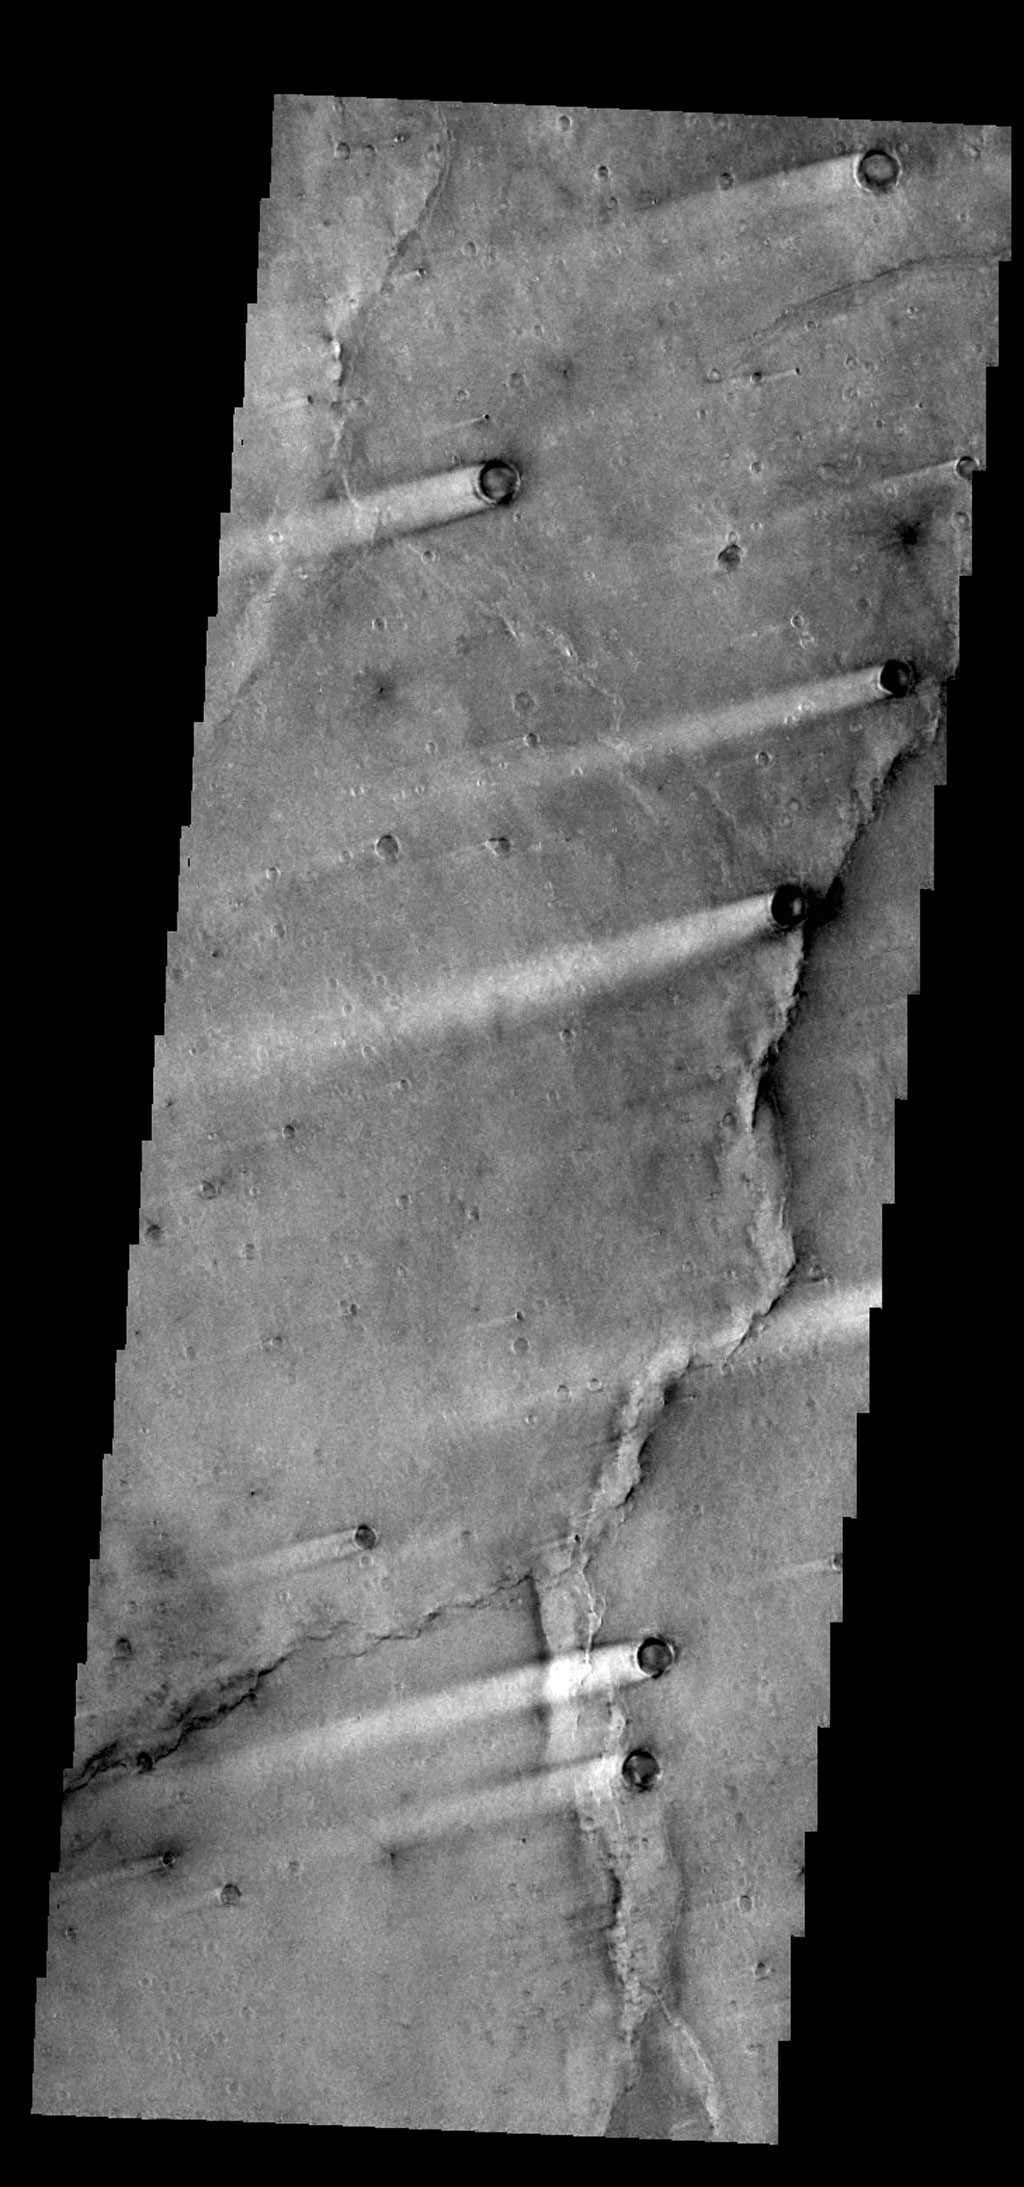 The windstreaks in this image from NASA's 2001 Mars Odyssey spacecraft are located in Syrtis Major Planum between Nili and Meroe Paterae.